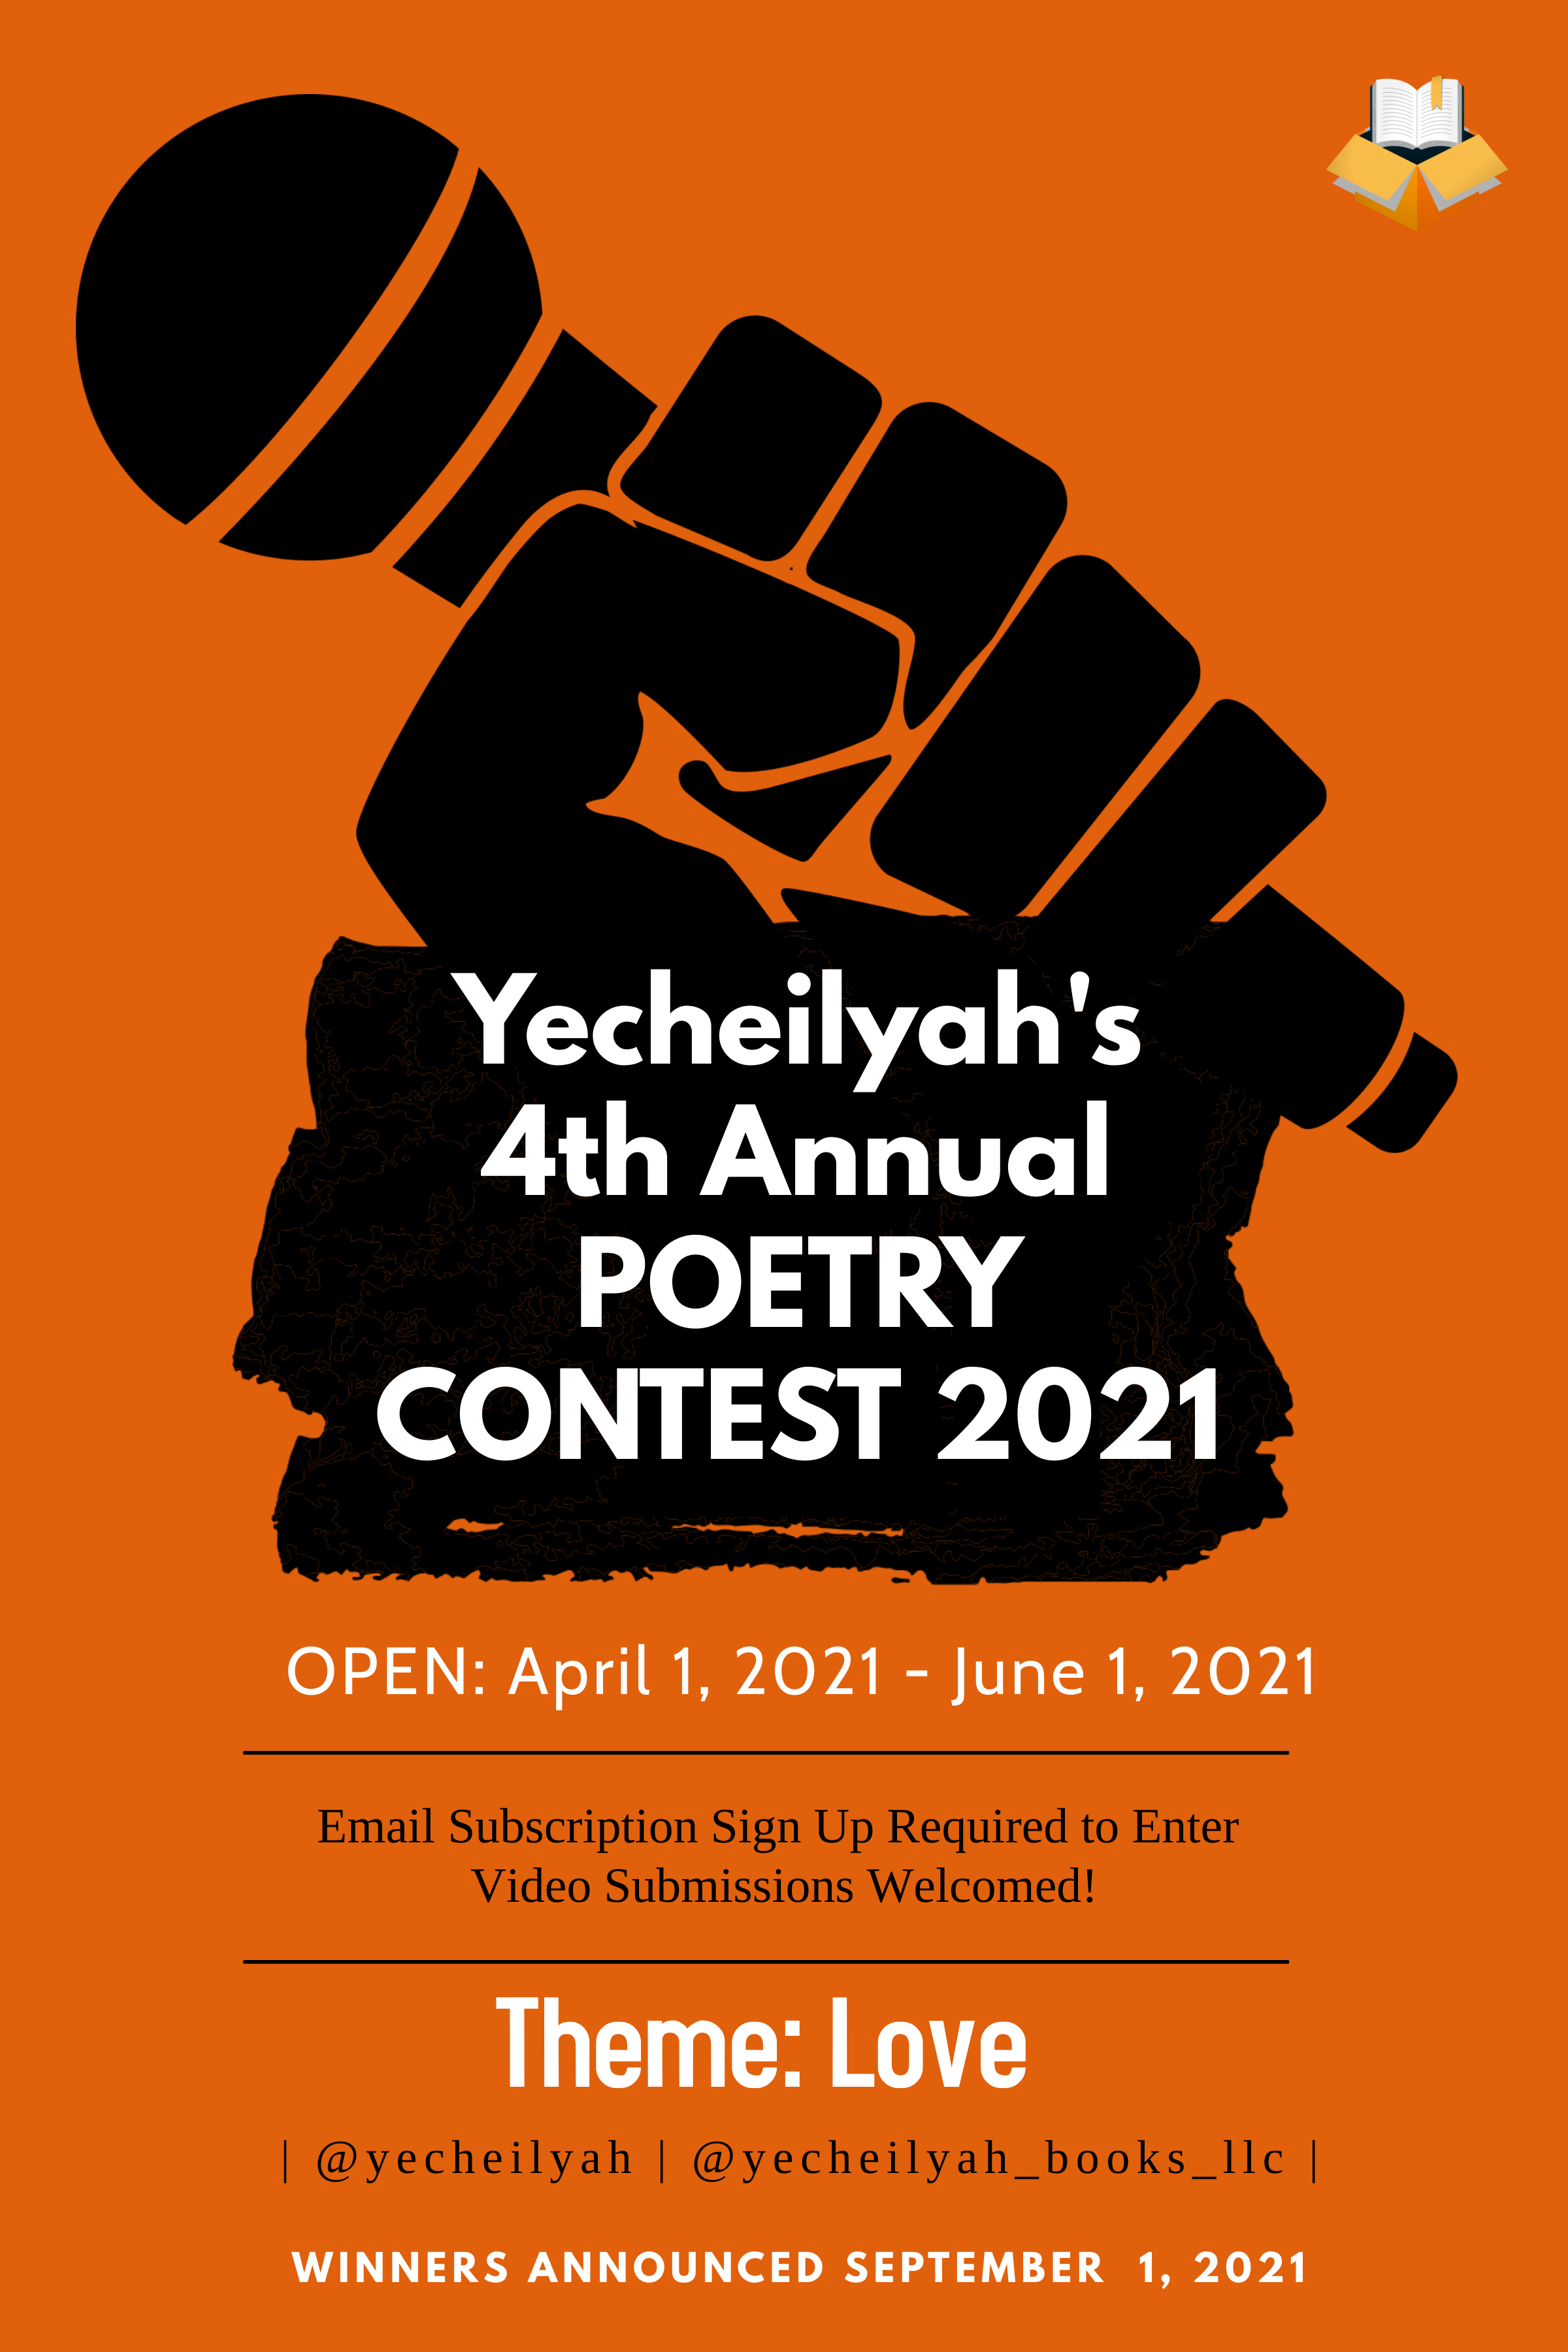 Yecheilyah's 4th Annual Poetry Contest